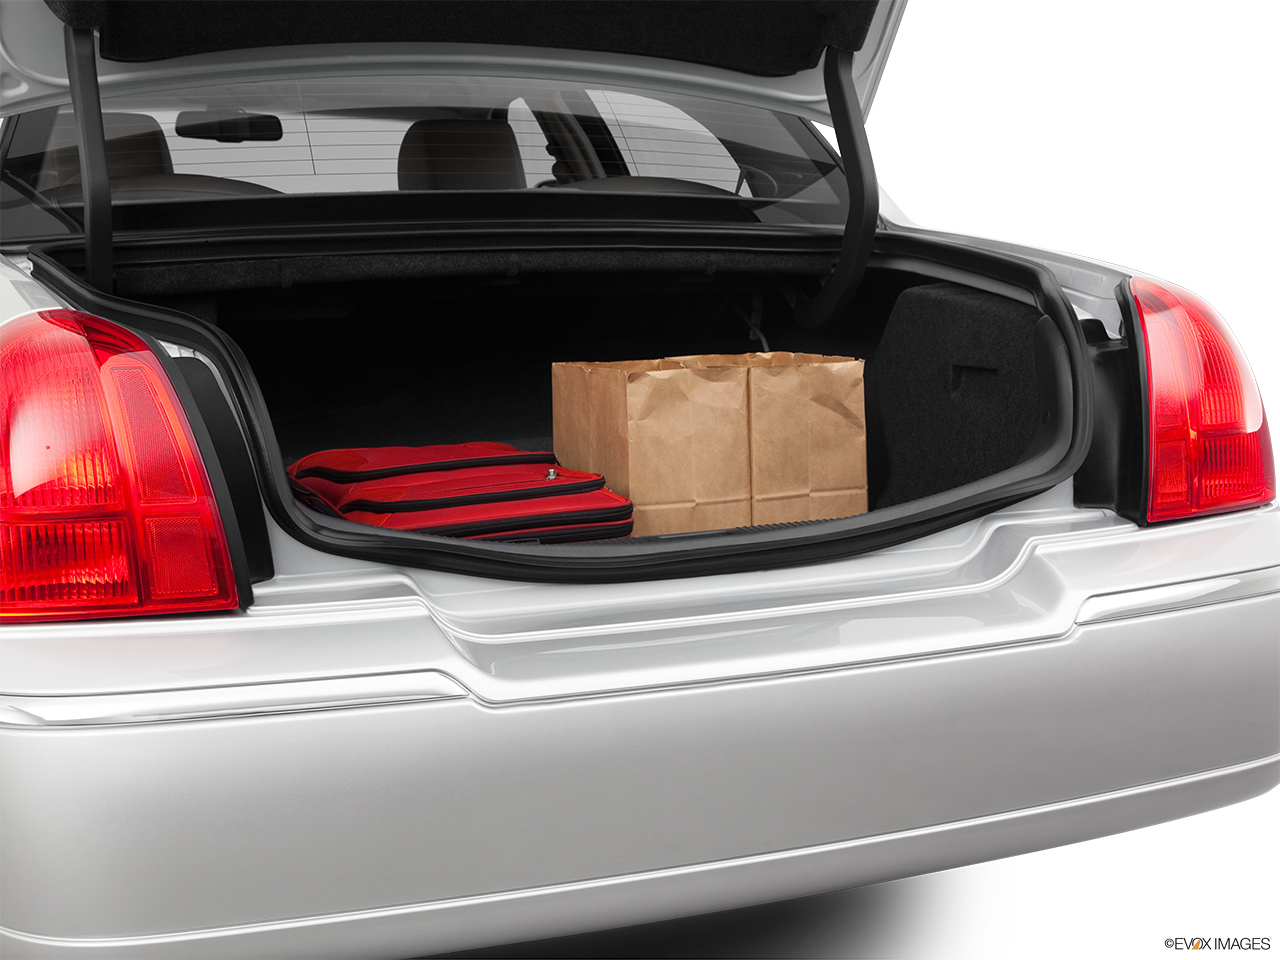 2011 Lincoln Town Car Signature Limited Trunk props.